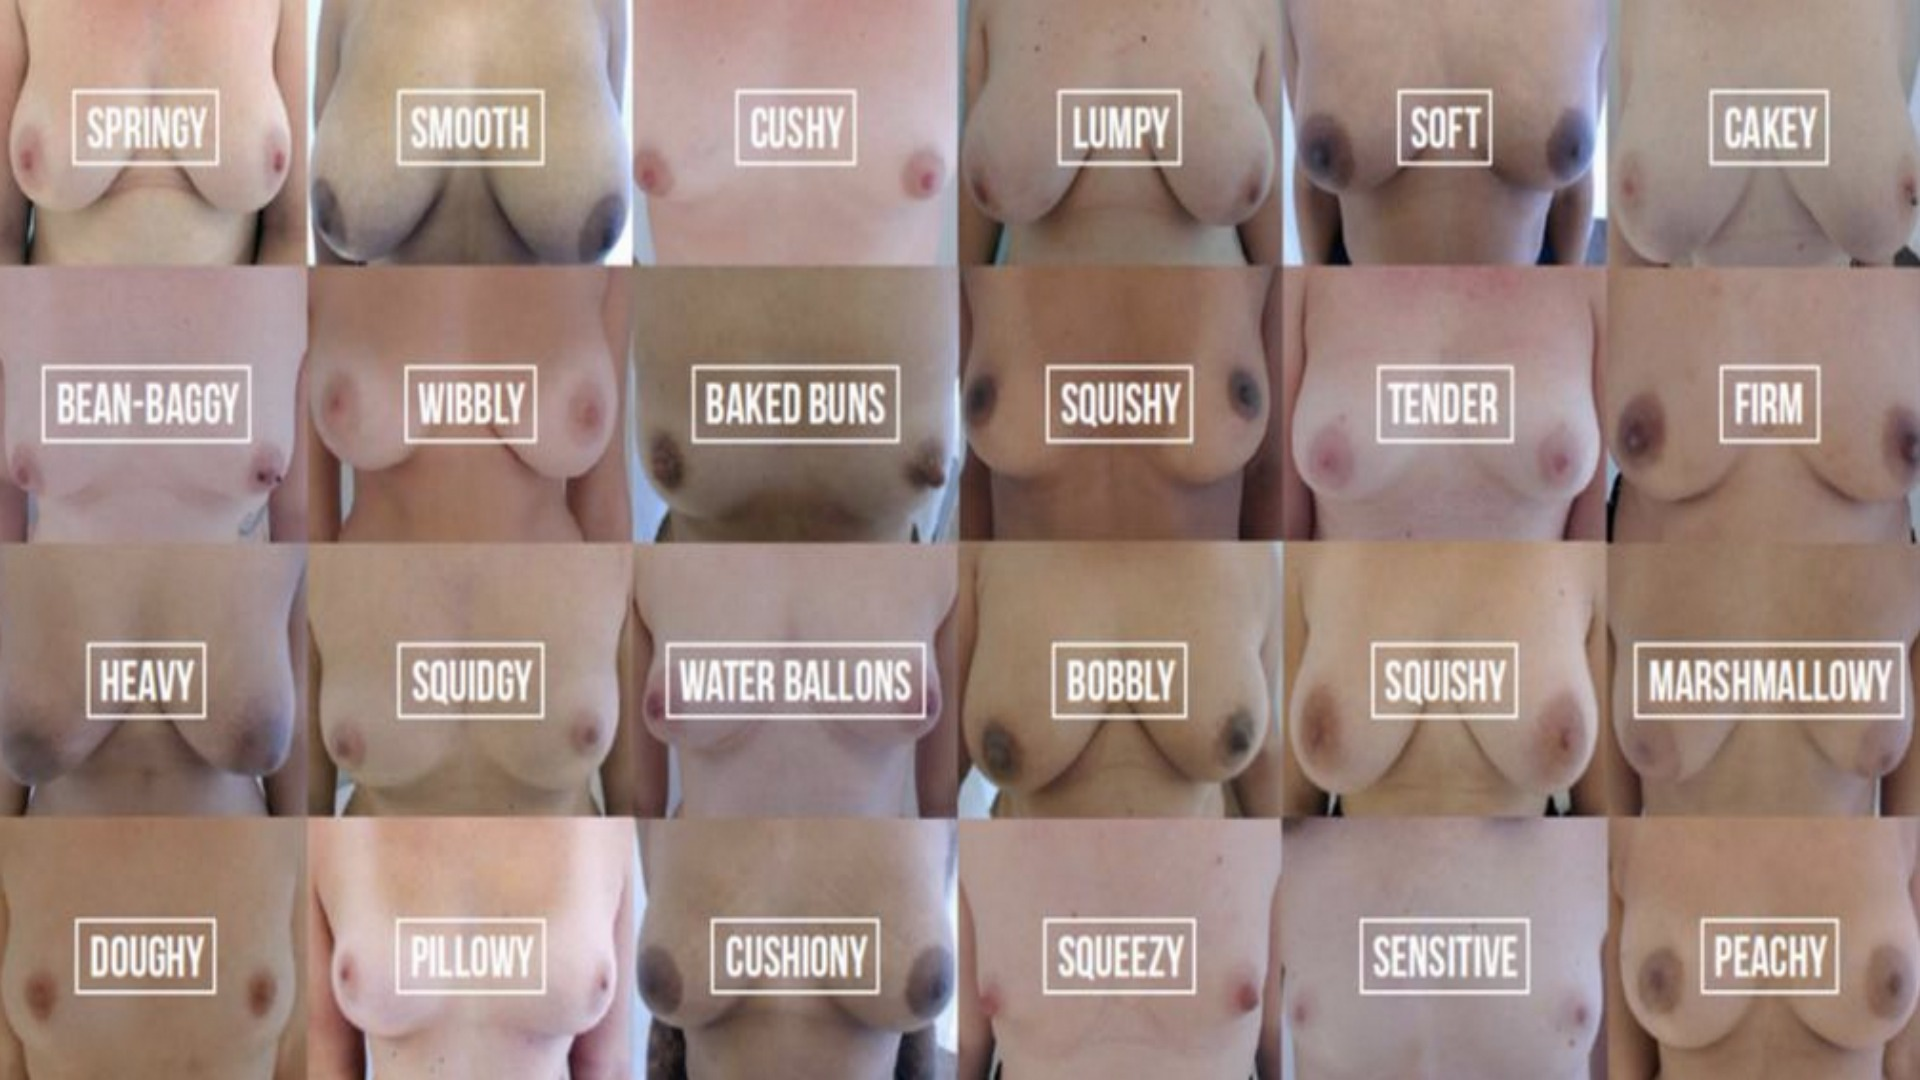 Do you know #whatnormalfeelslike for your boobs?